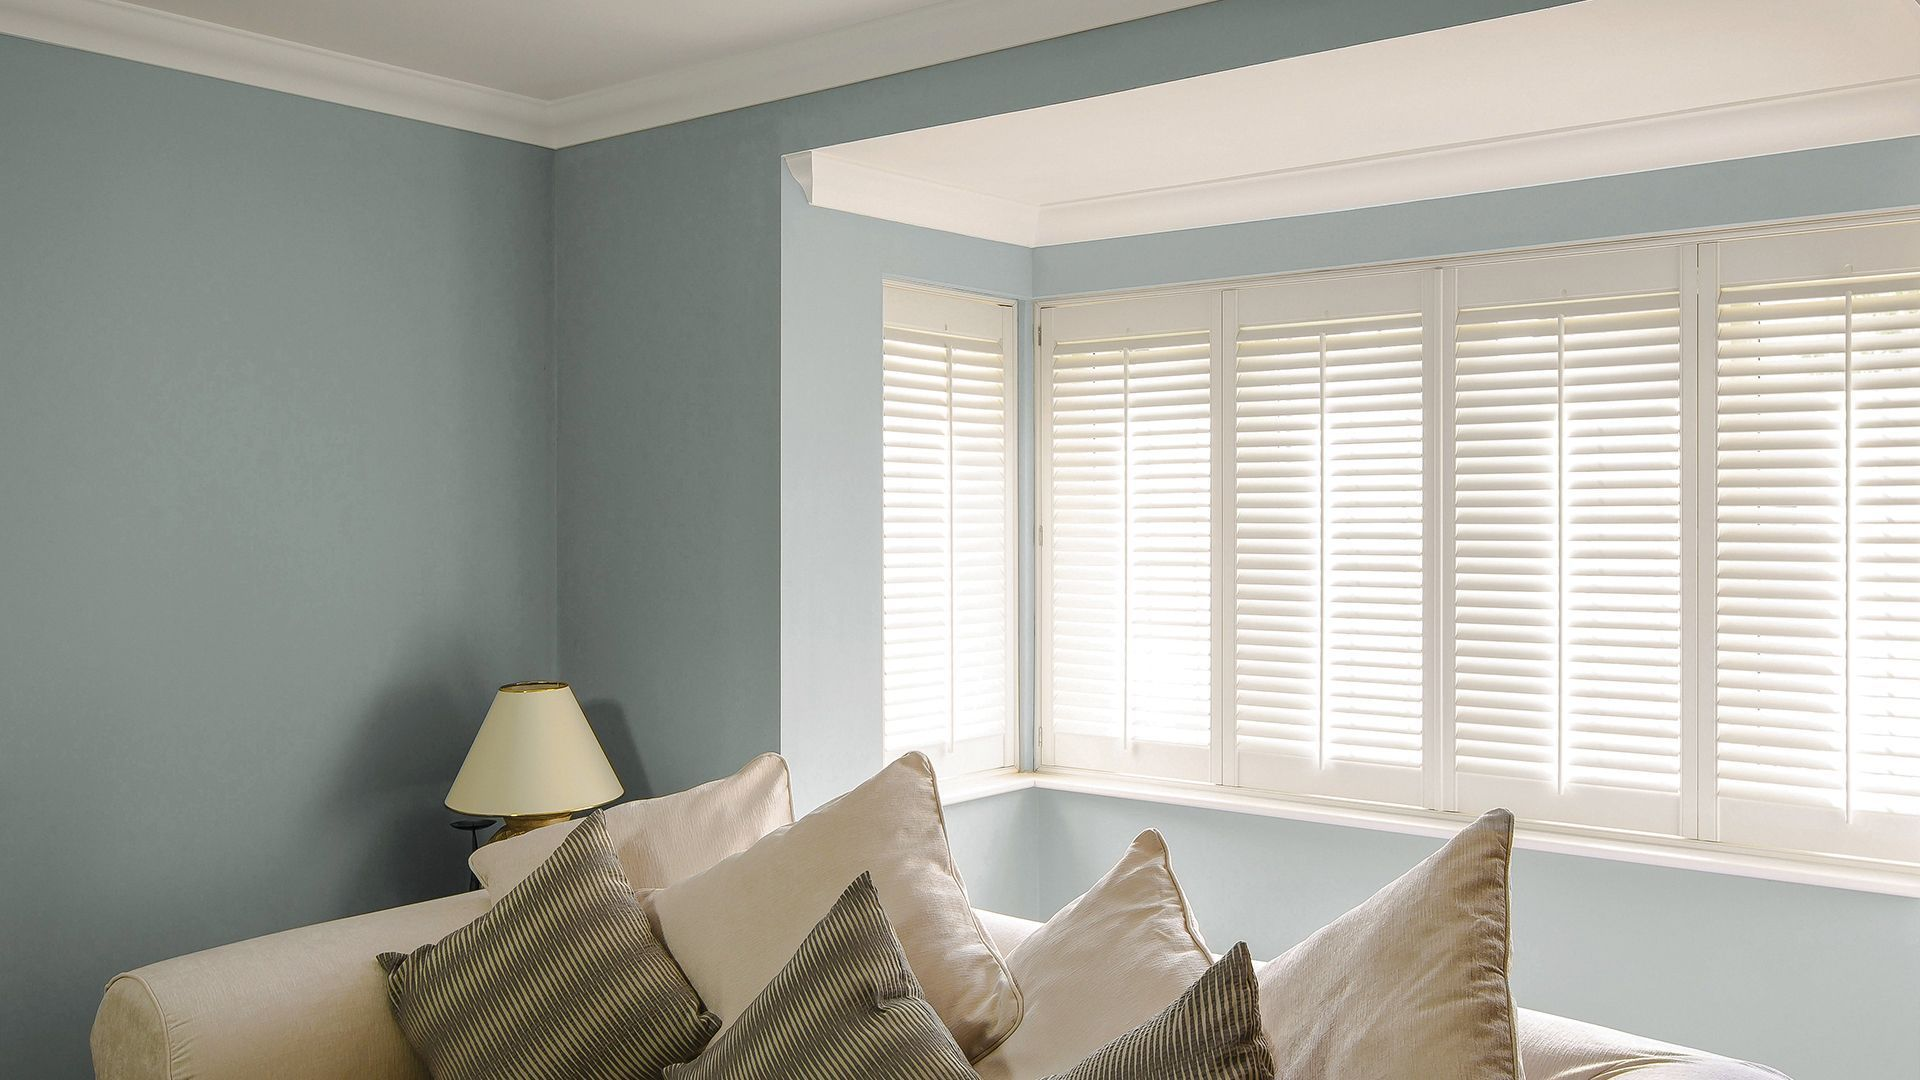 curved window blinds window treatment arched bay window shutters shutter blinds for square curved windows uk bathroomblinds verticleblindsbedrooms